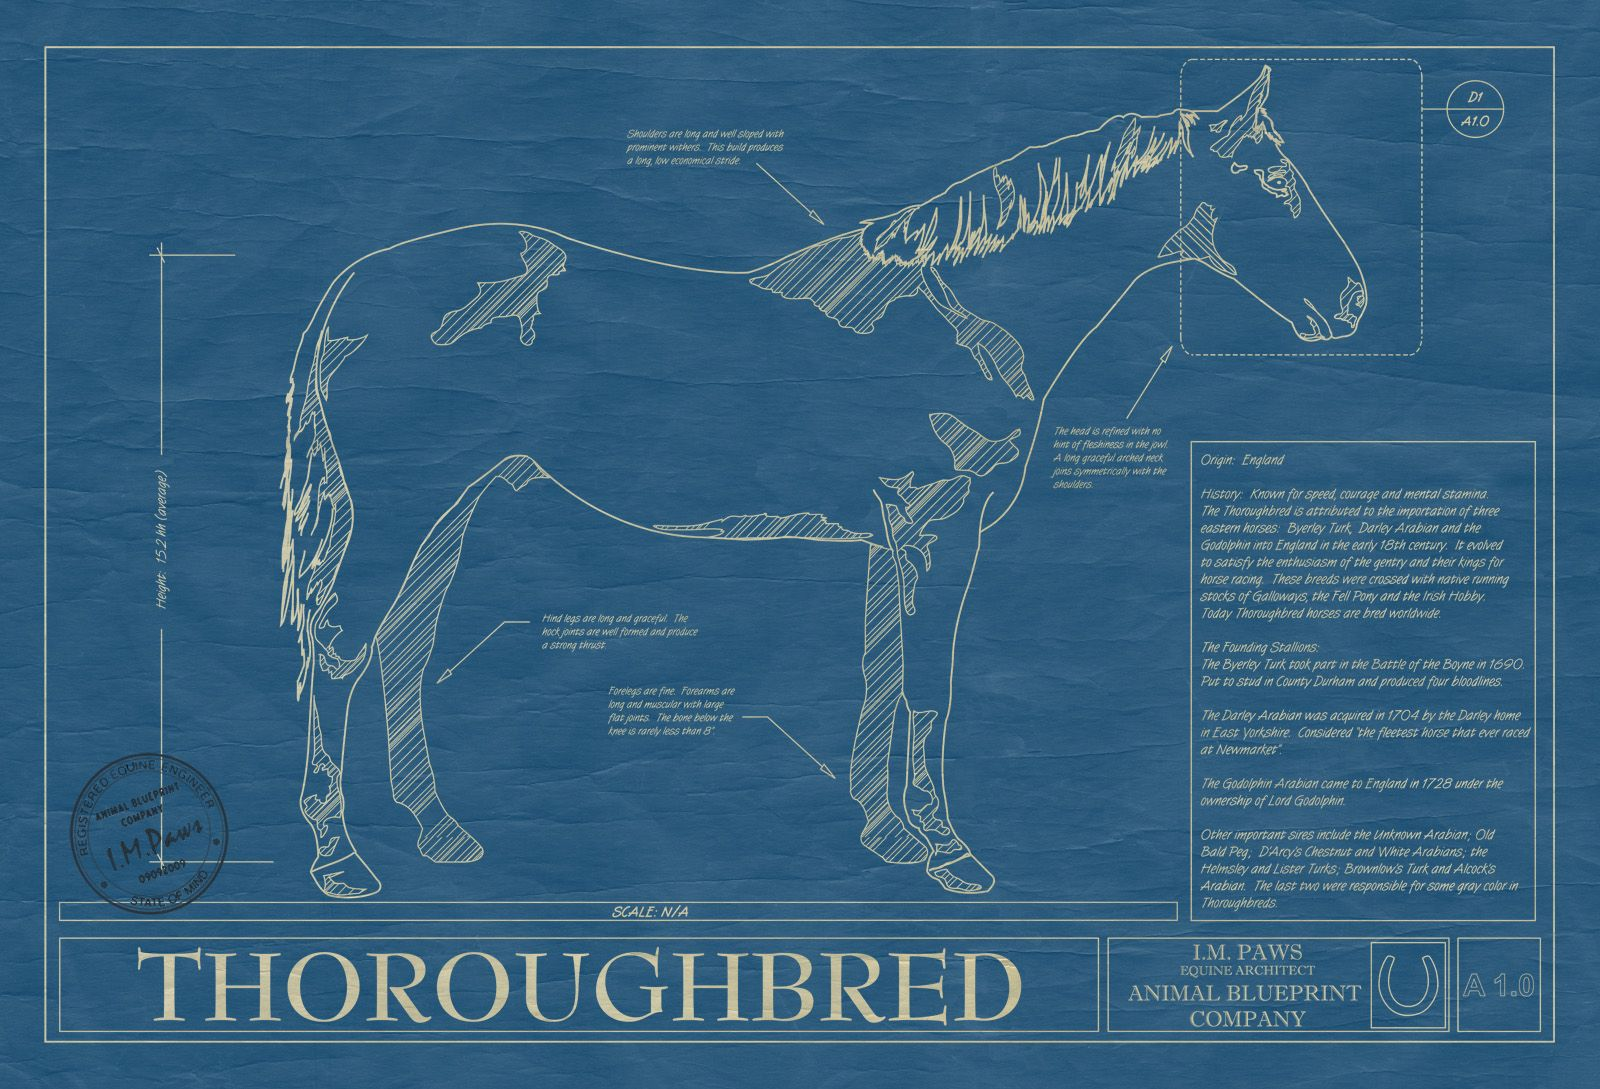 Animal Blueprint Company- Thoroughbred Horse Print